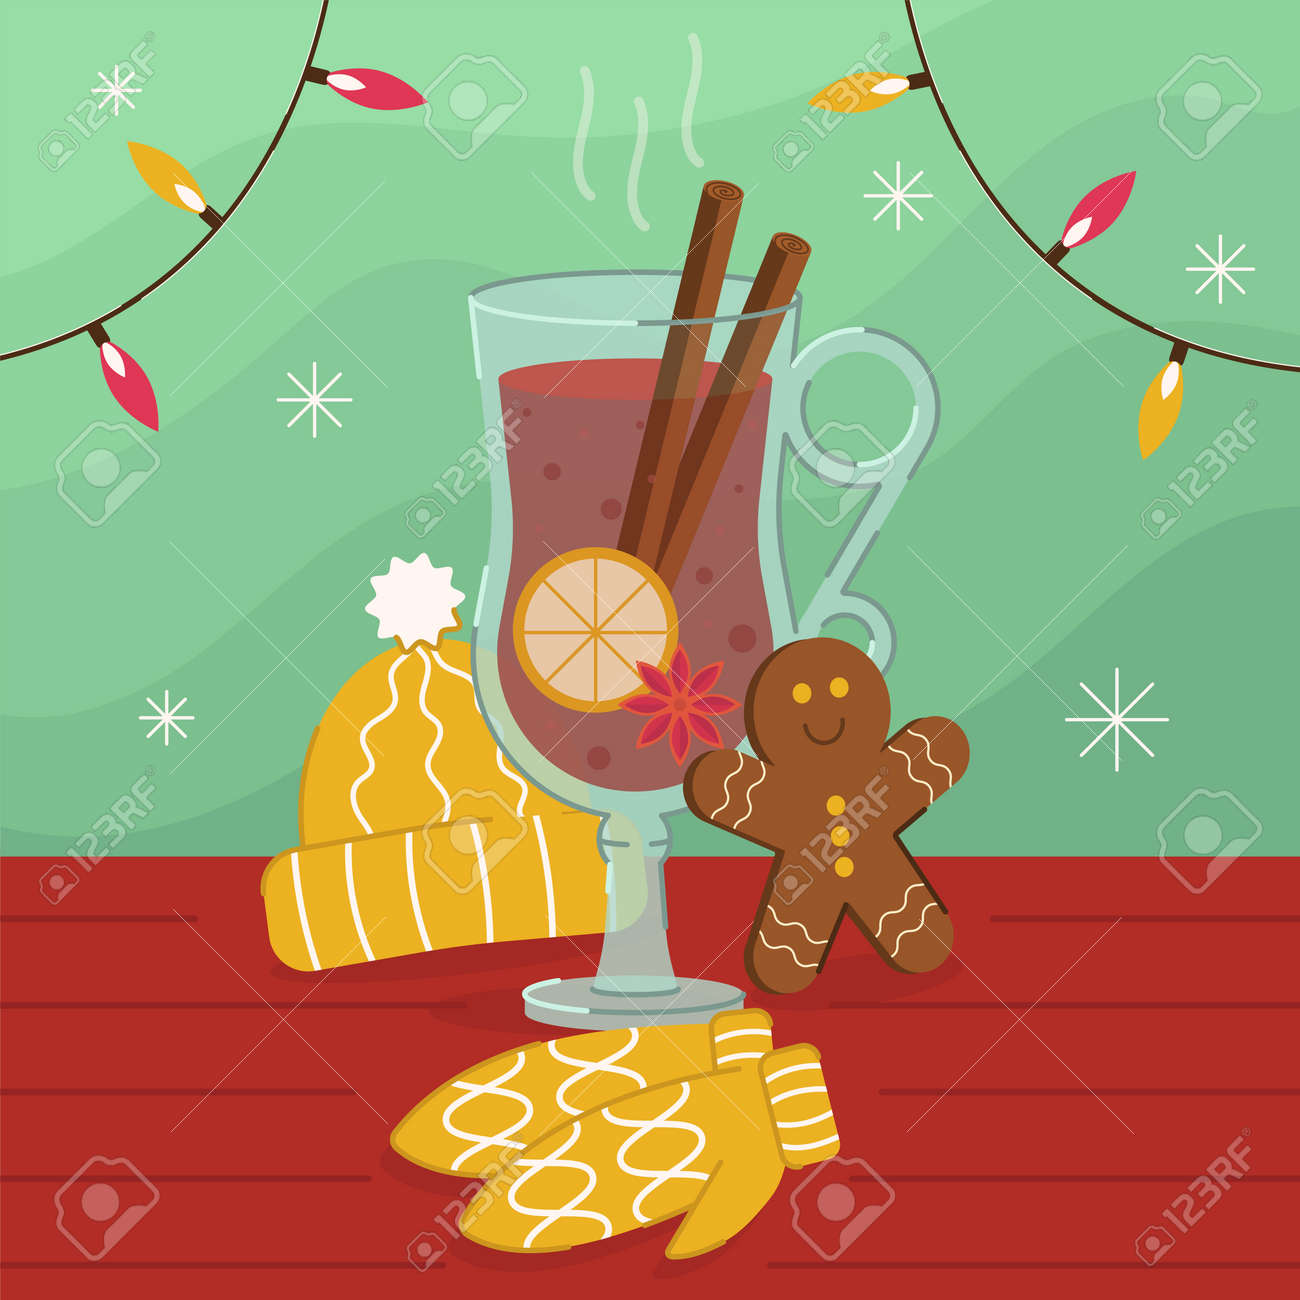 Vector illustration of a hot mulled wine - 161957778